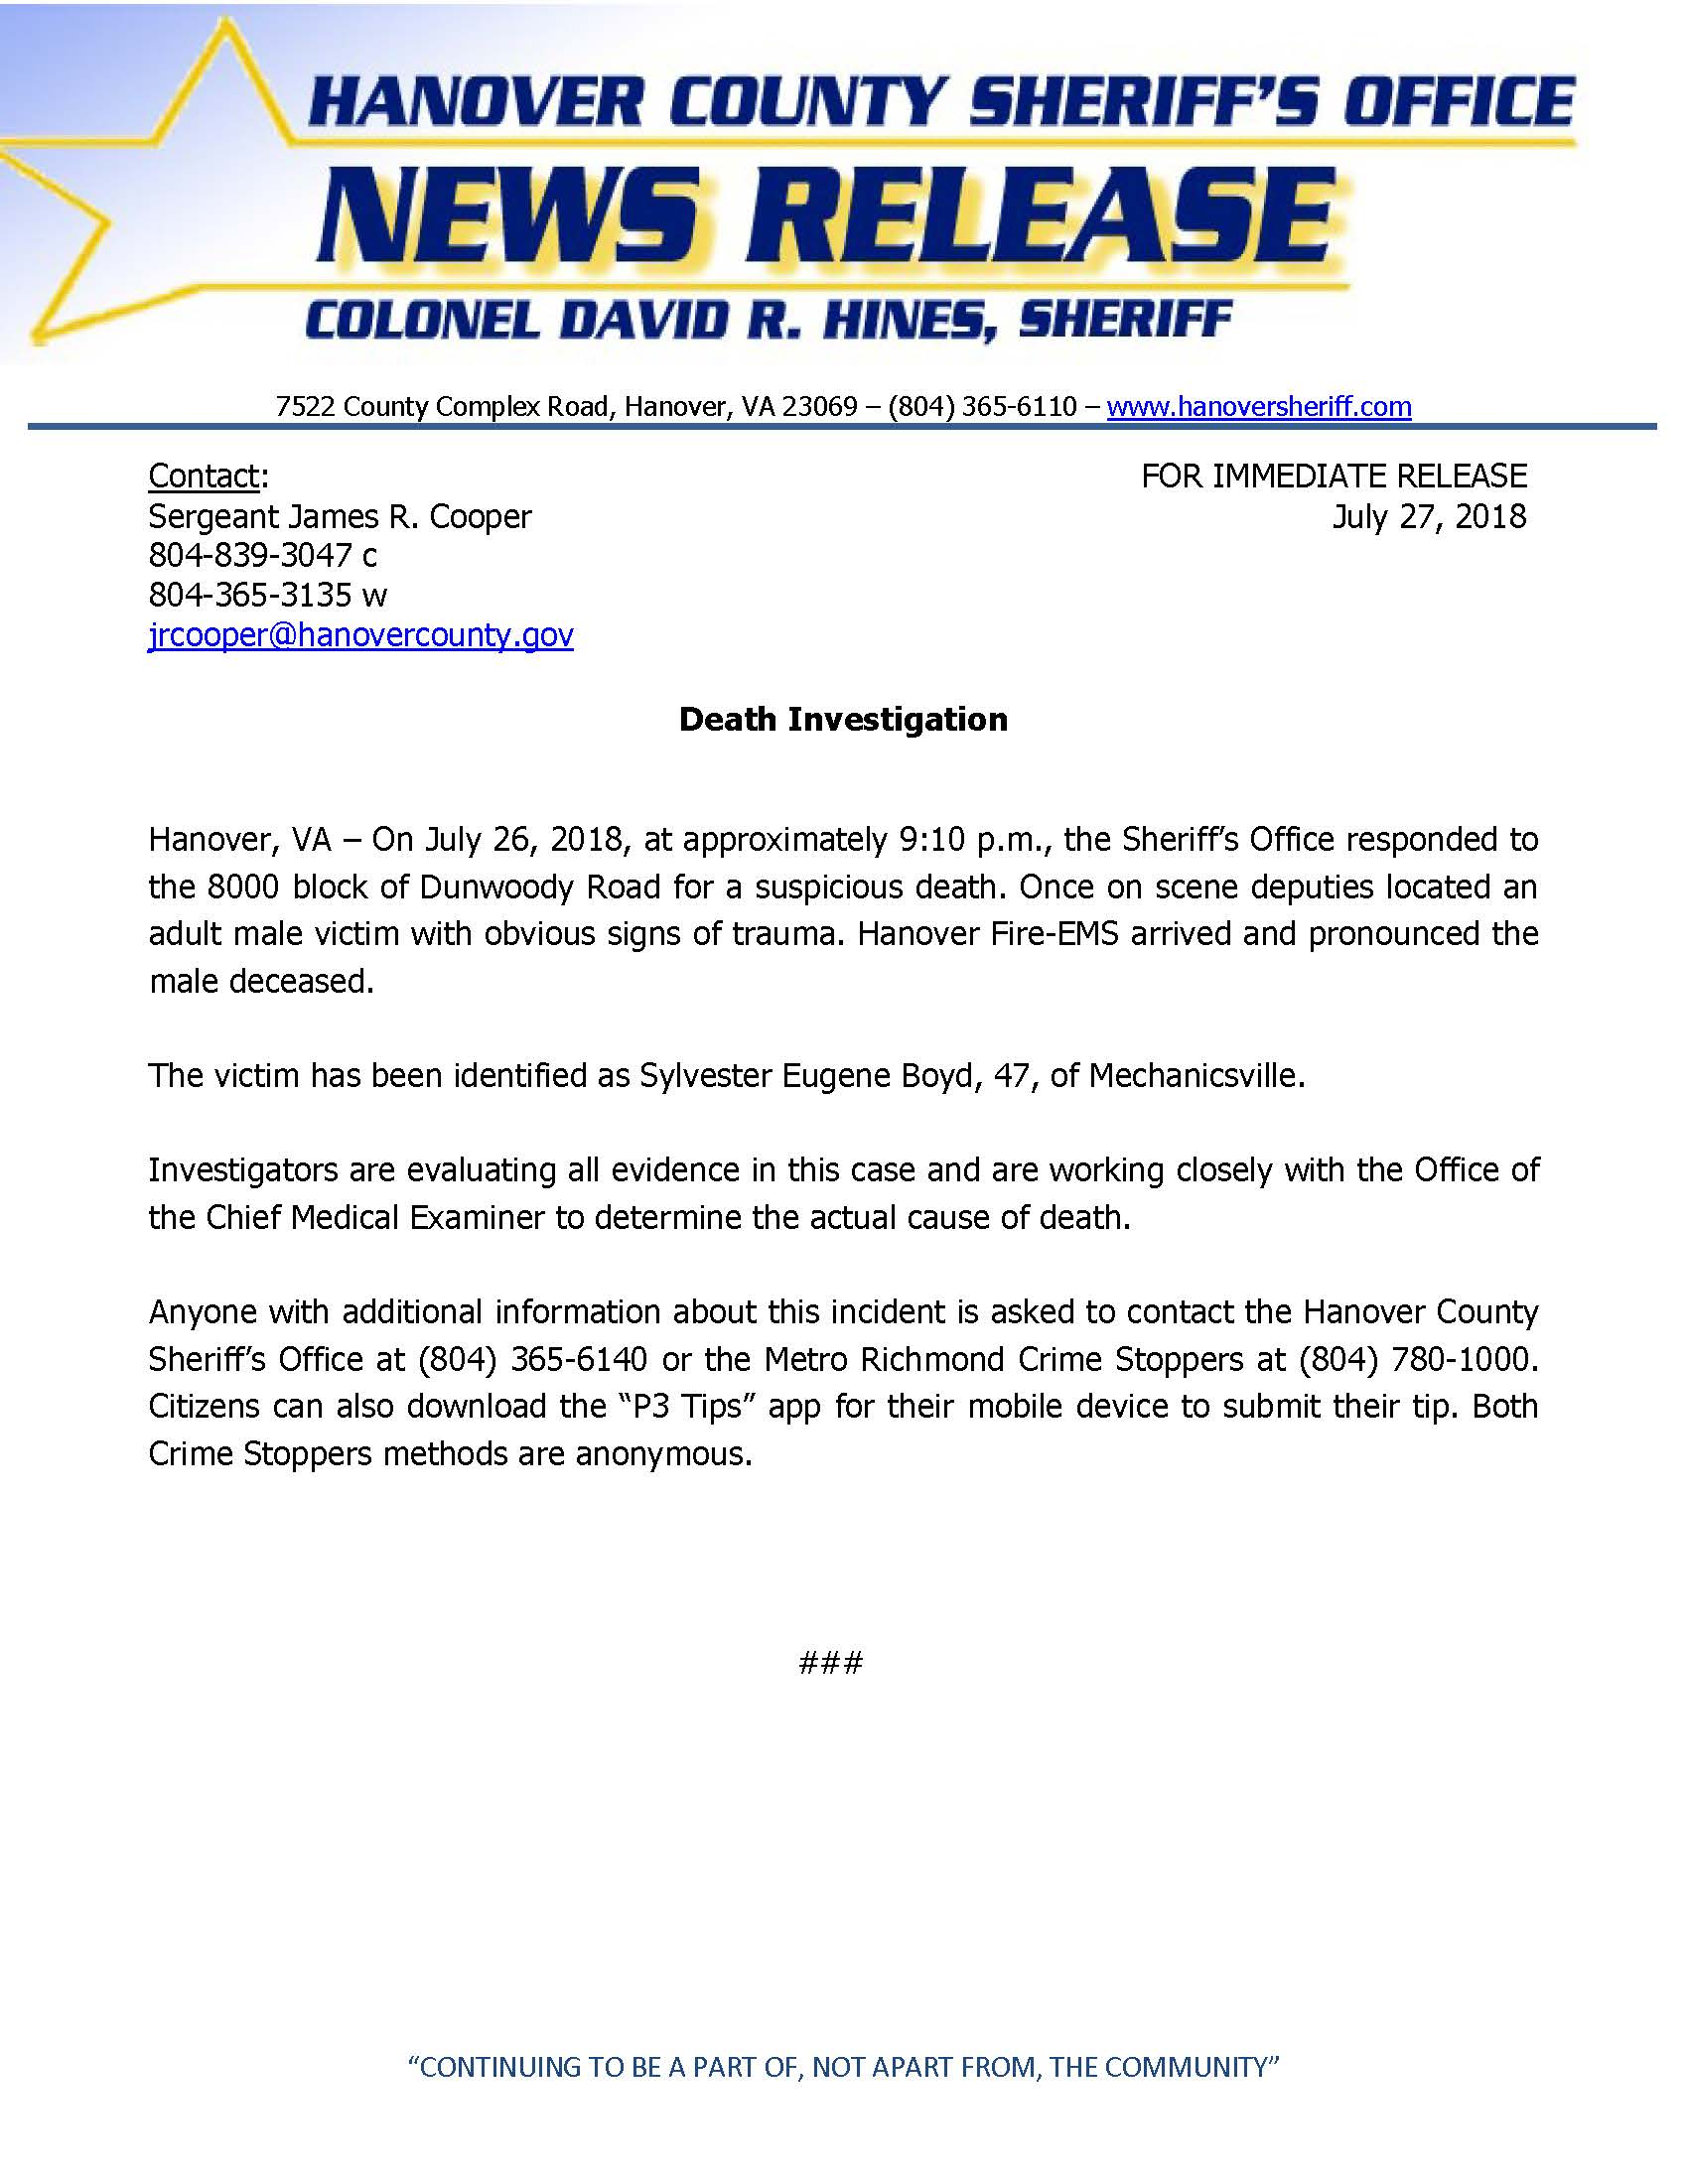 HCSO - Death Investigation_Dunwoody Road- July 27, 2018